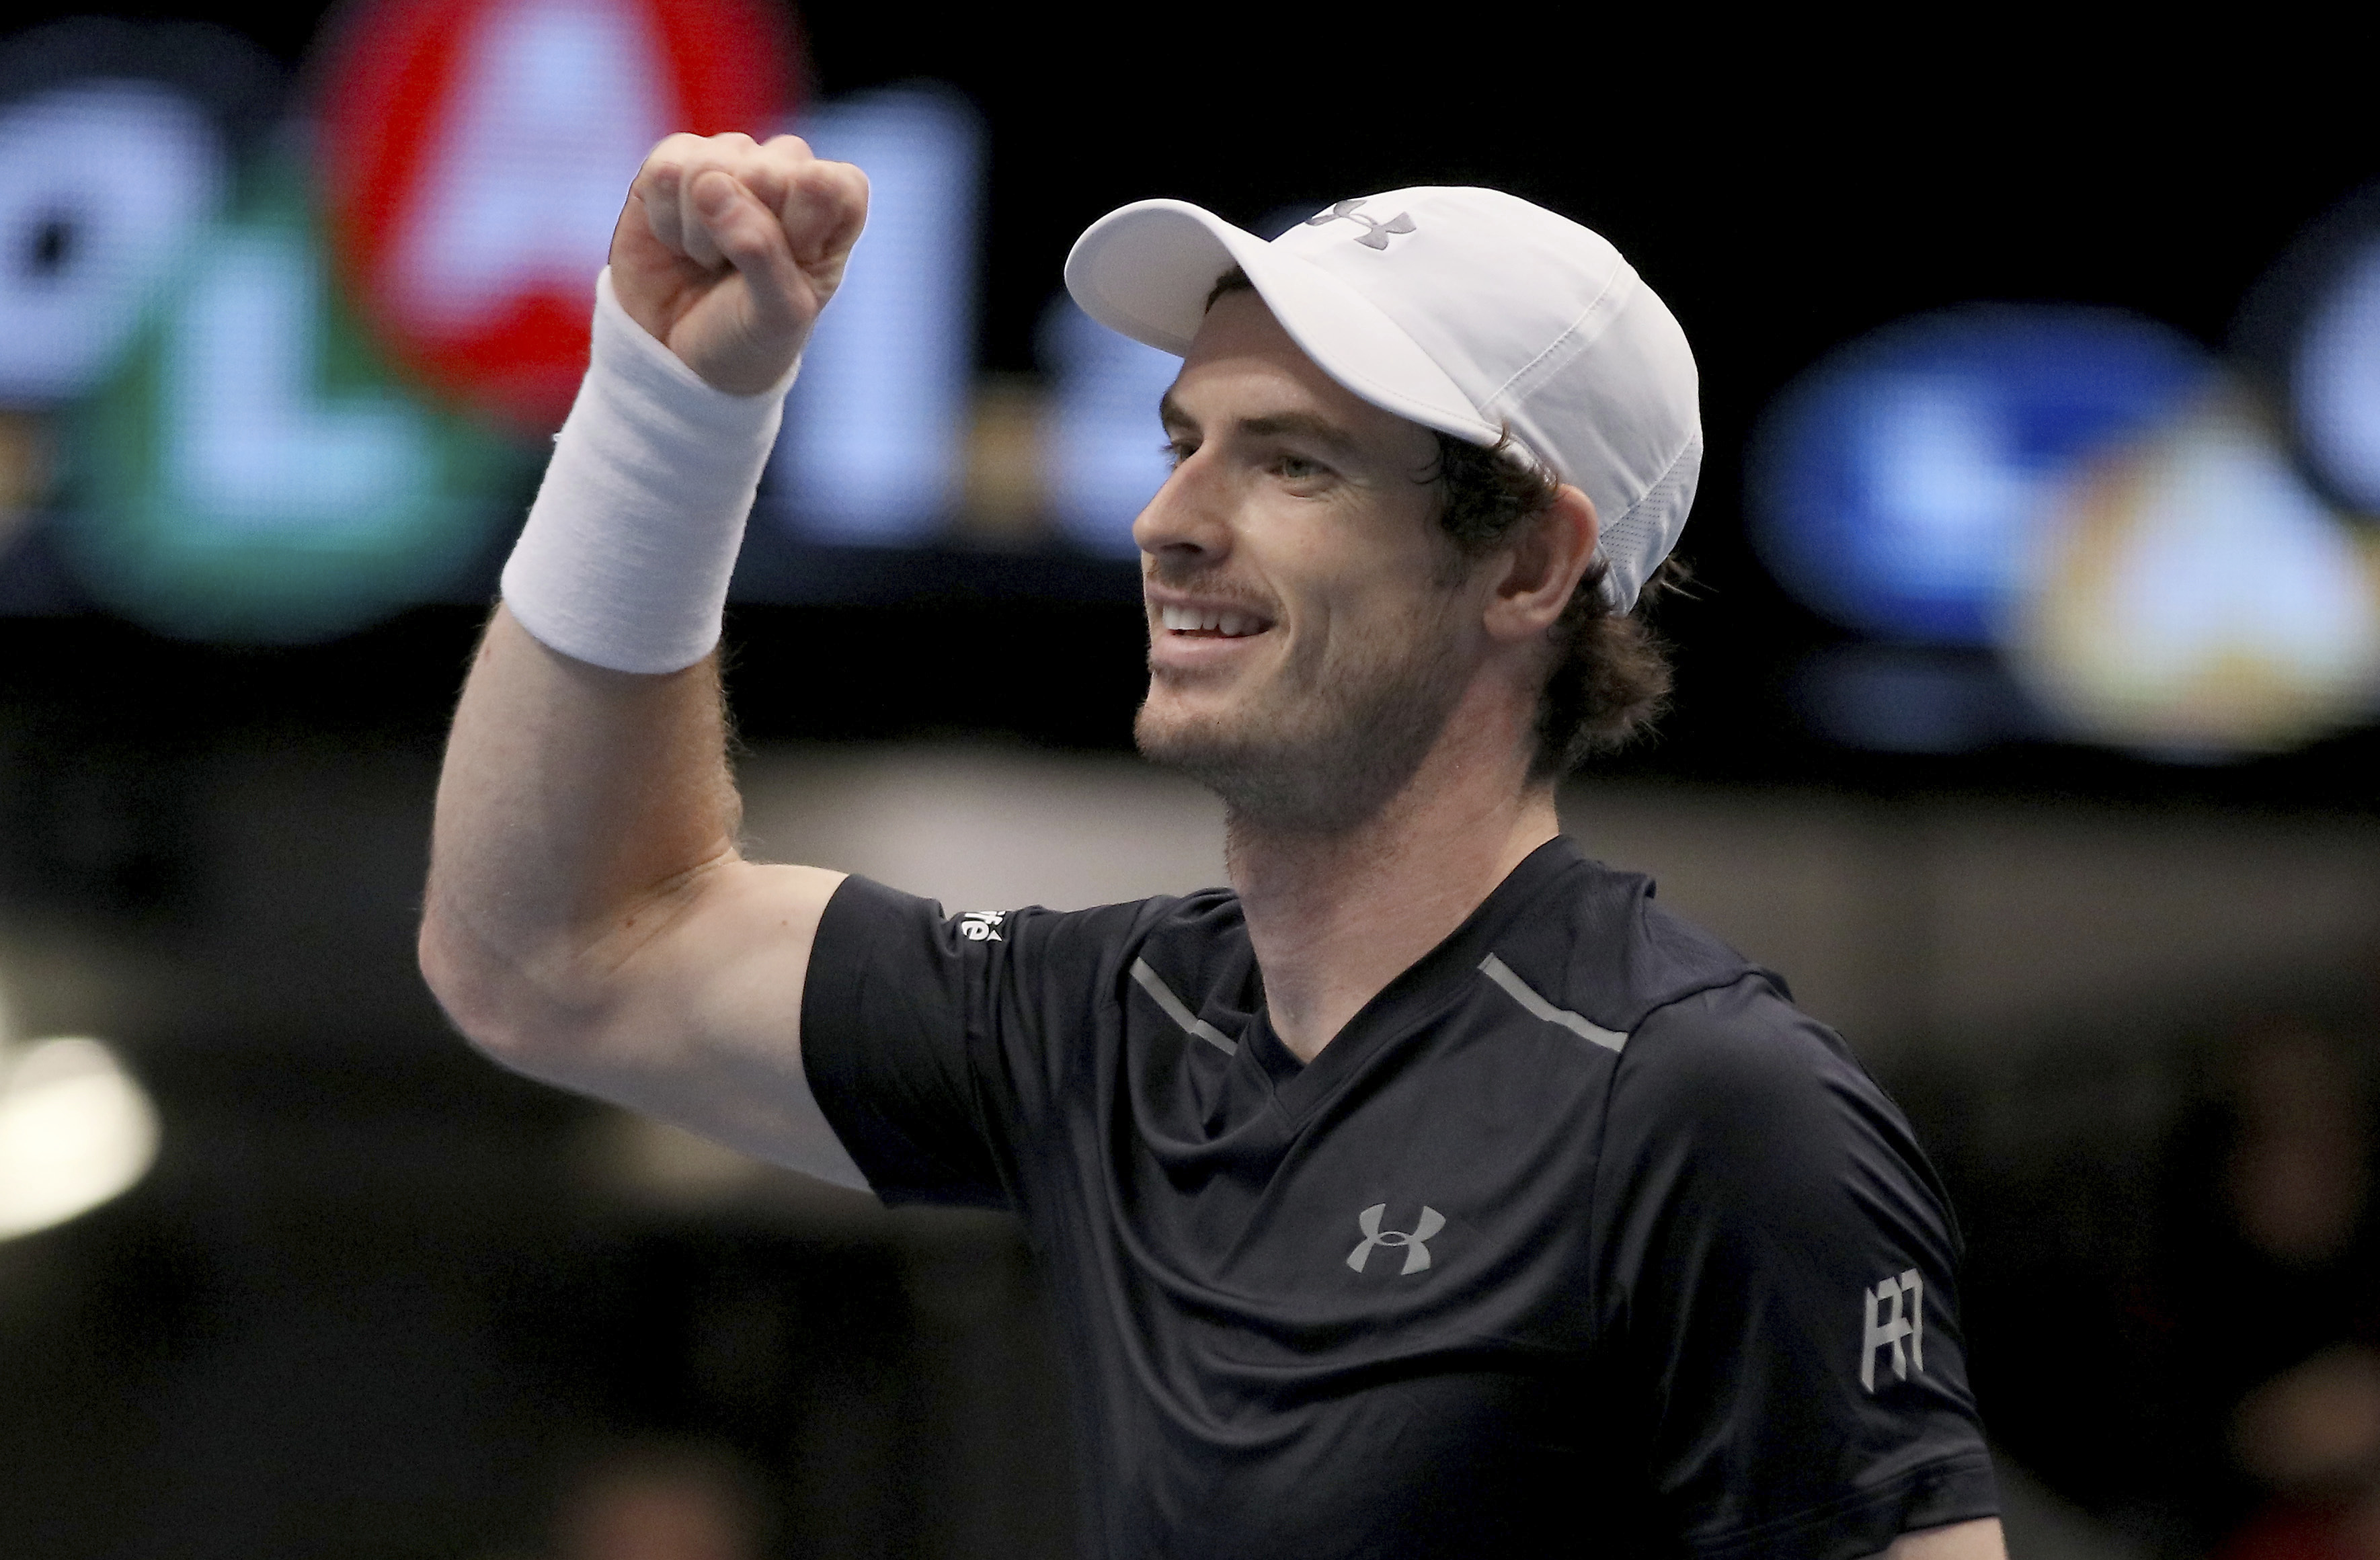 Andy Murray of Great Britain celebrates after winning the final match against Jo-Wilfried Tsonga of France at the Erste Bank Open tennis tournament in Vienna, Austria, Sunday, Oct. 30, 2016. (AP Photo/Ronald Zak)